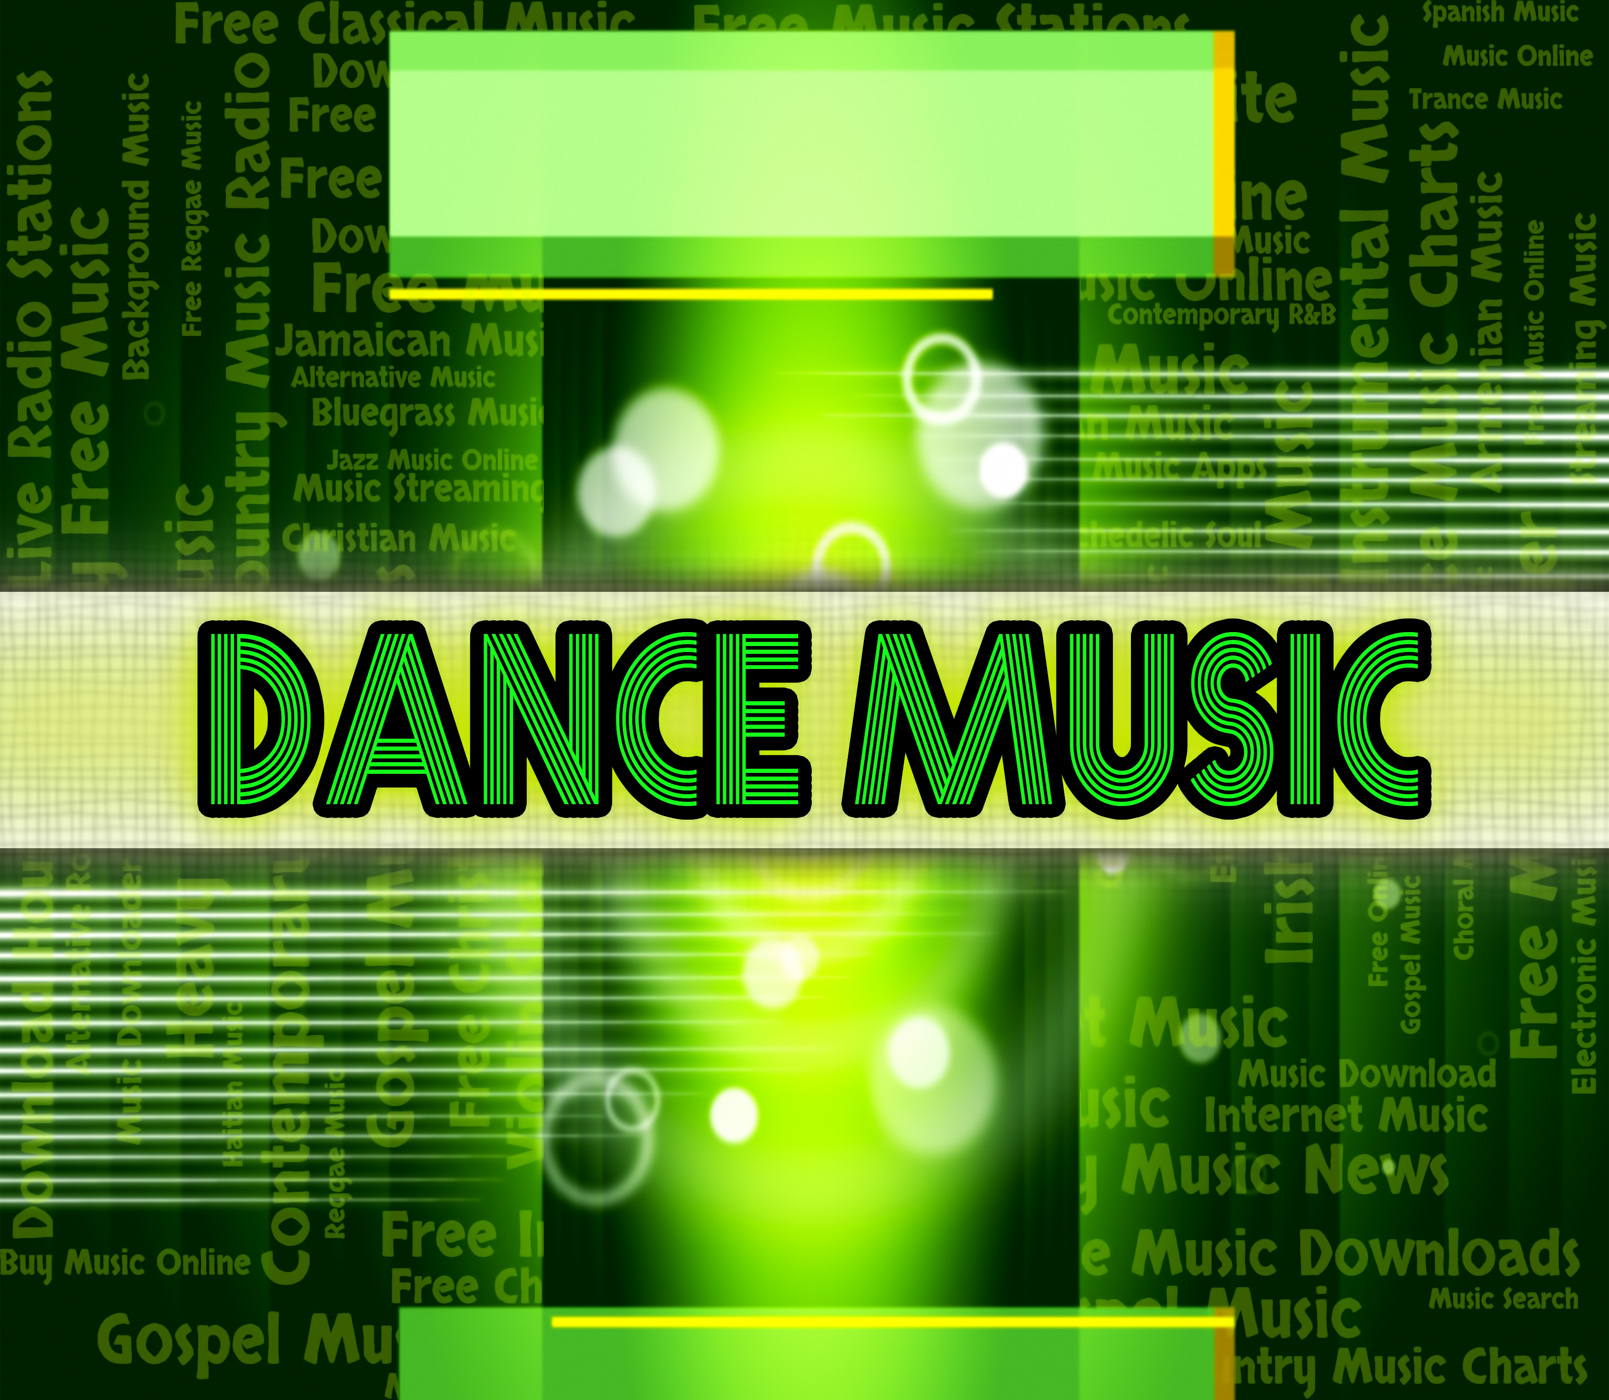 Dance music means sound tracks and dances photo